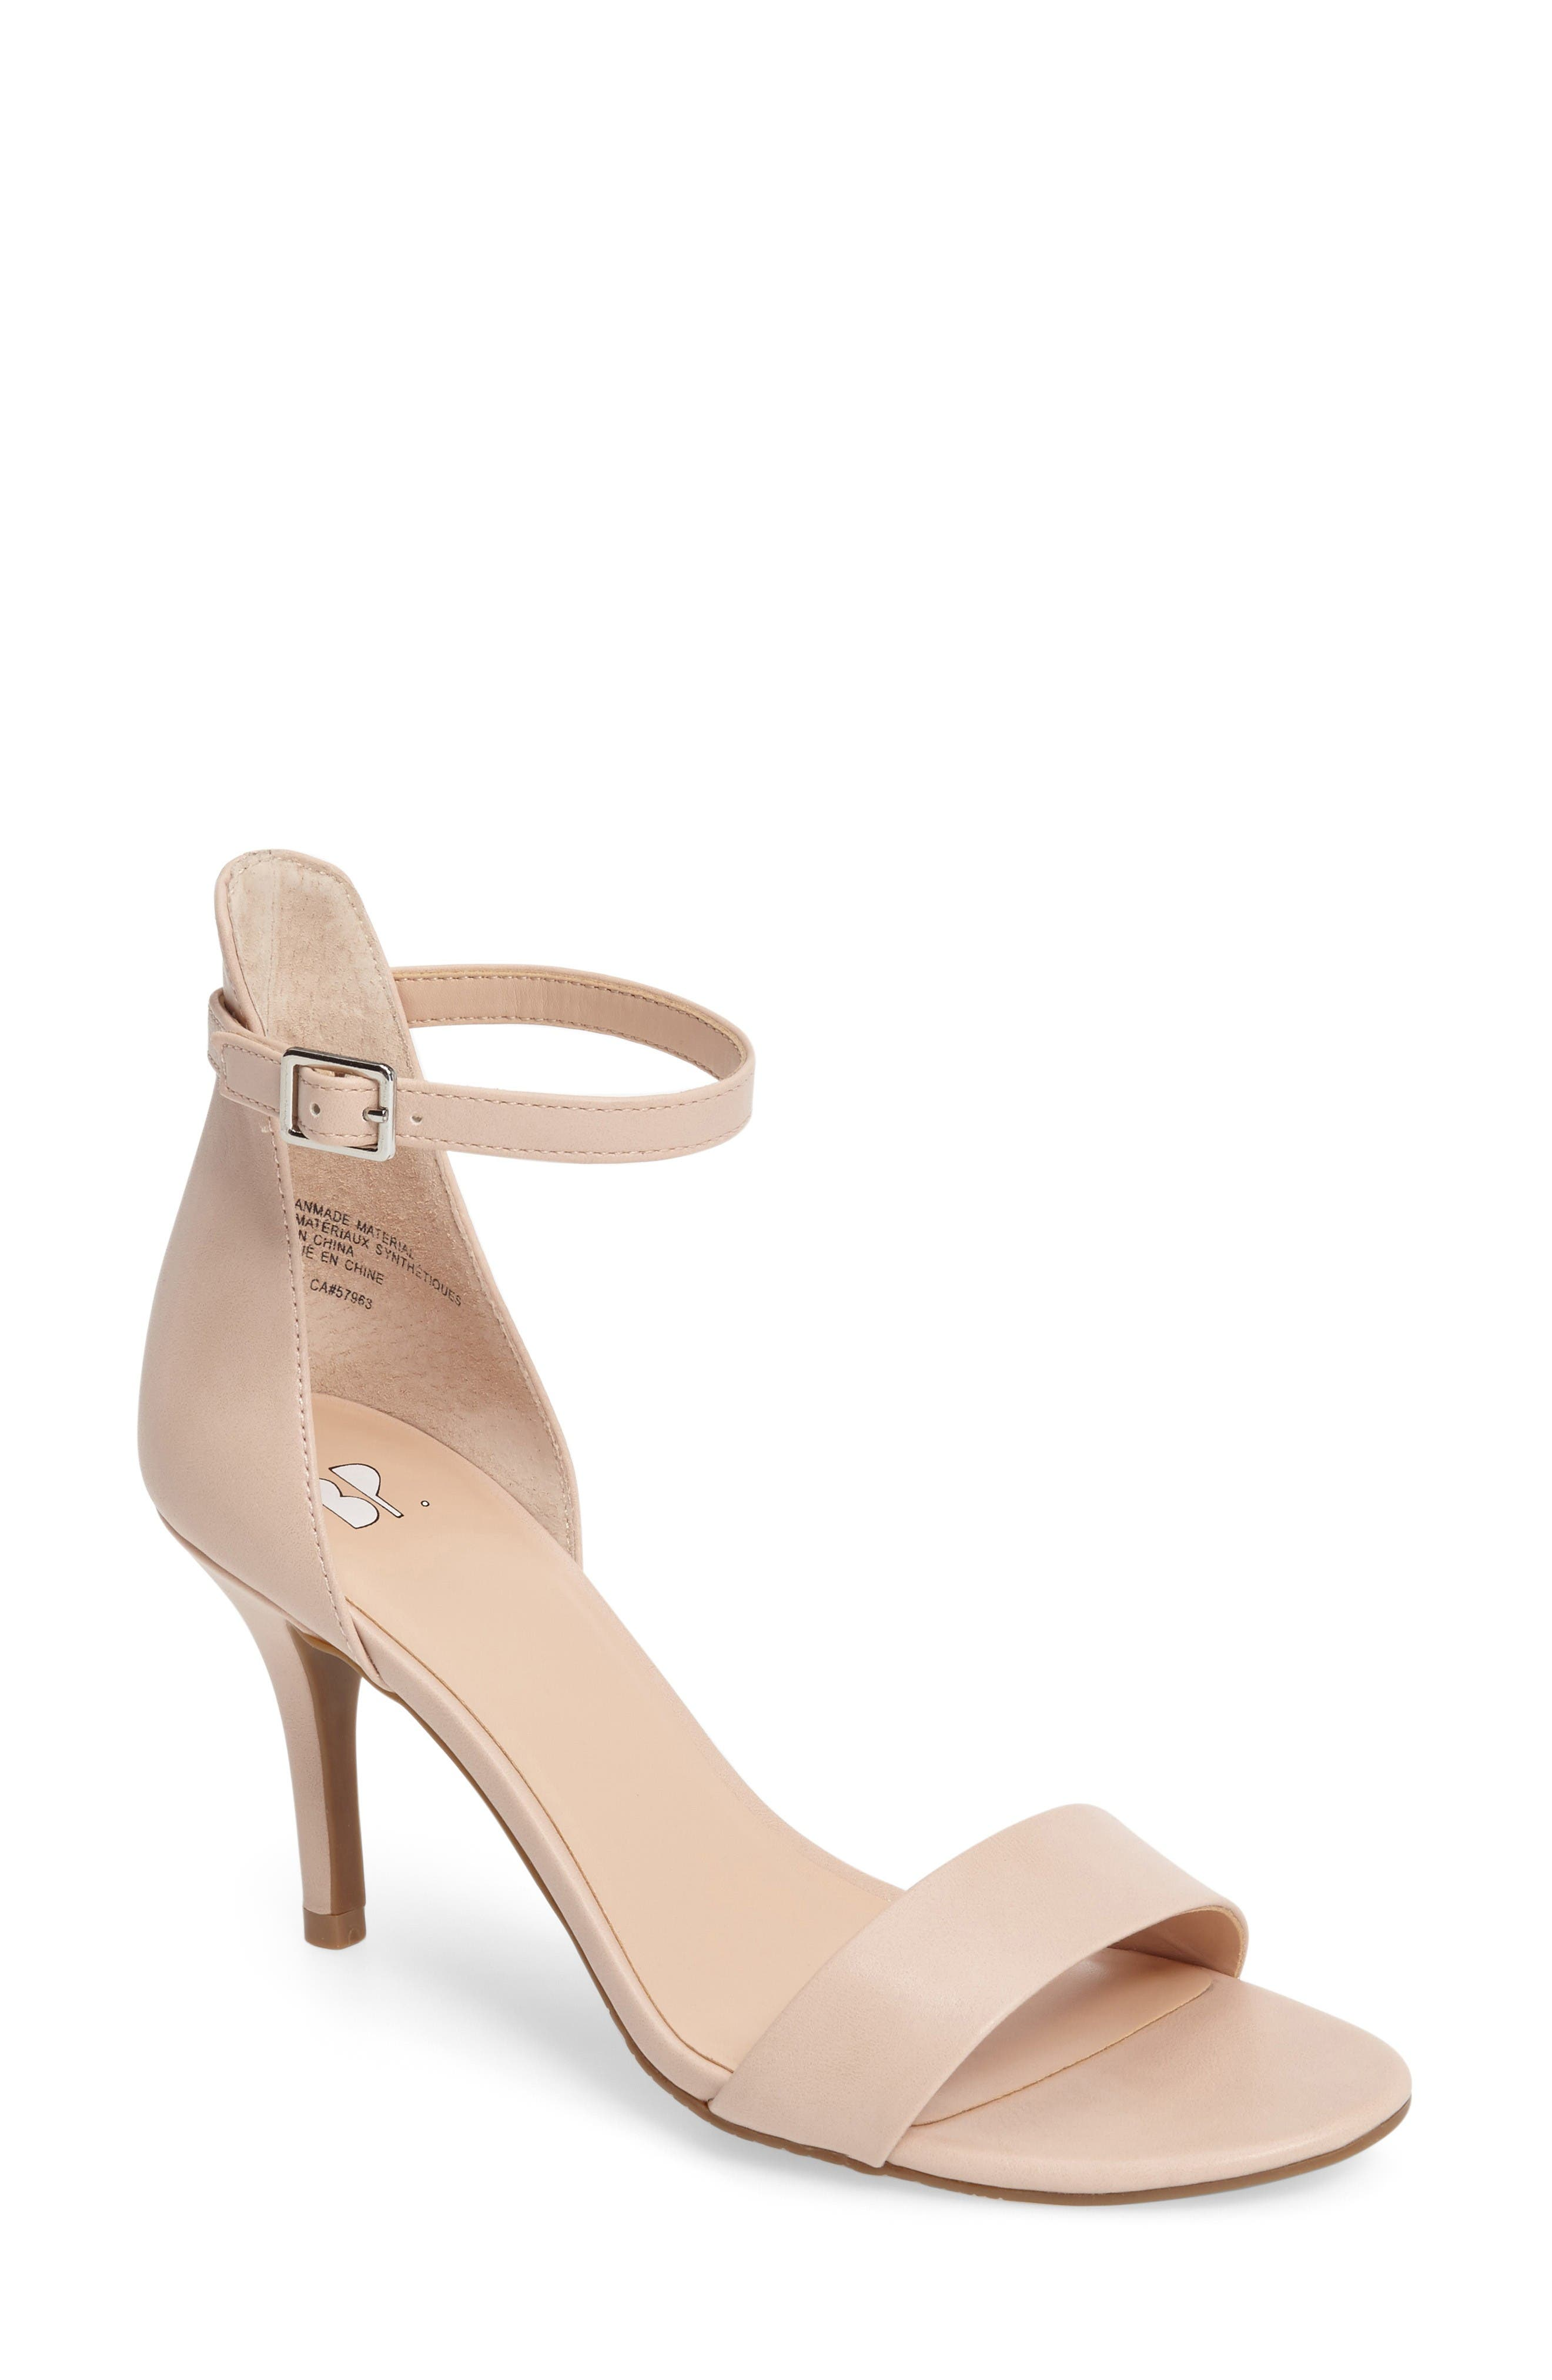 'Luminate' Open Toe Dress Sandal,                         Main,                         color, Blush Faux Leather